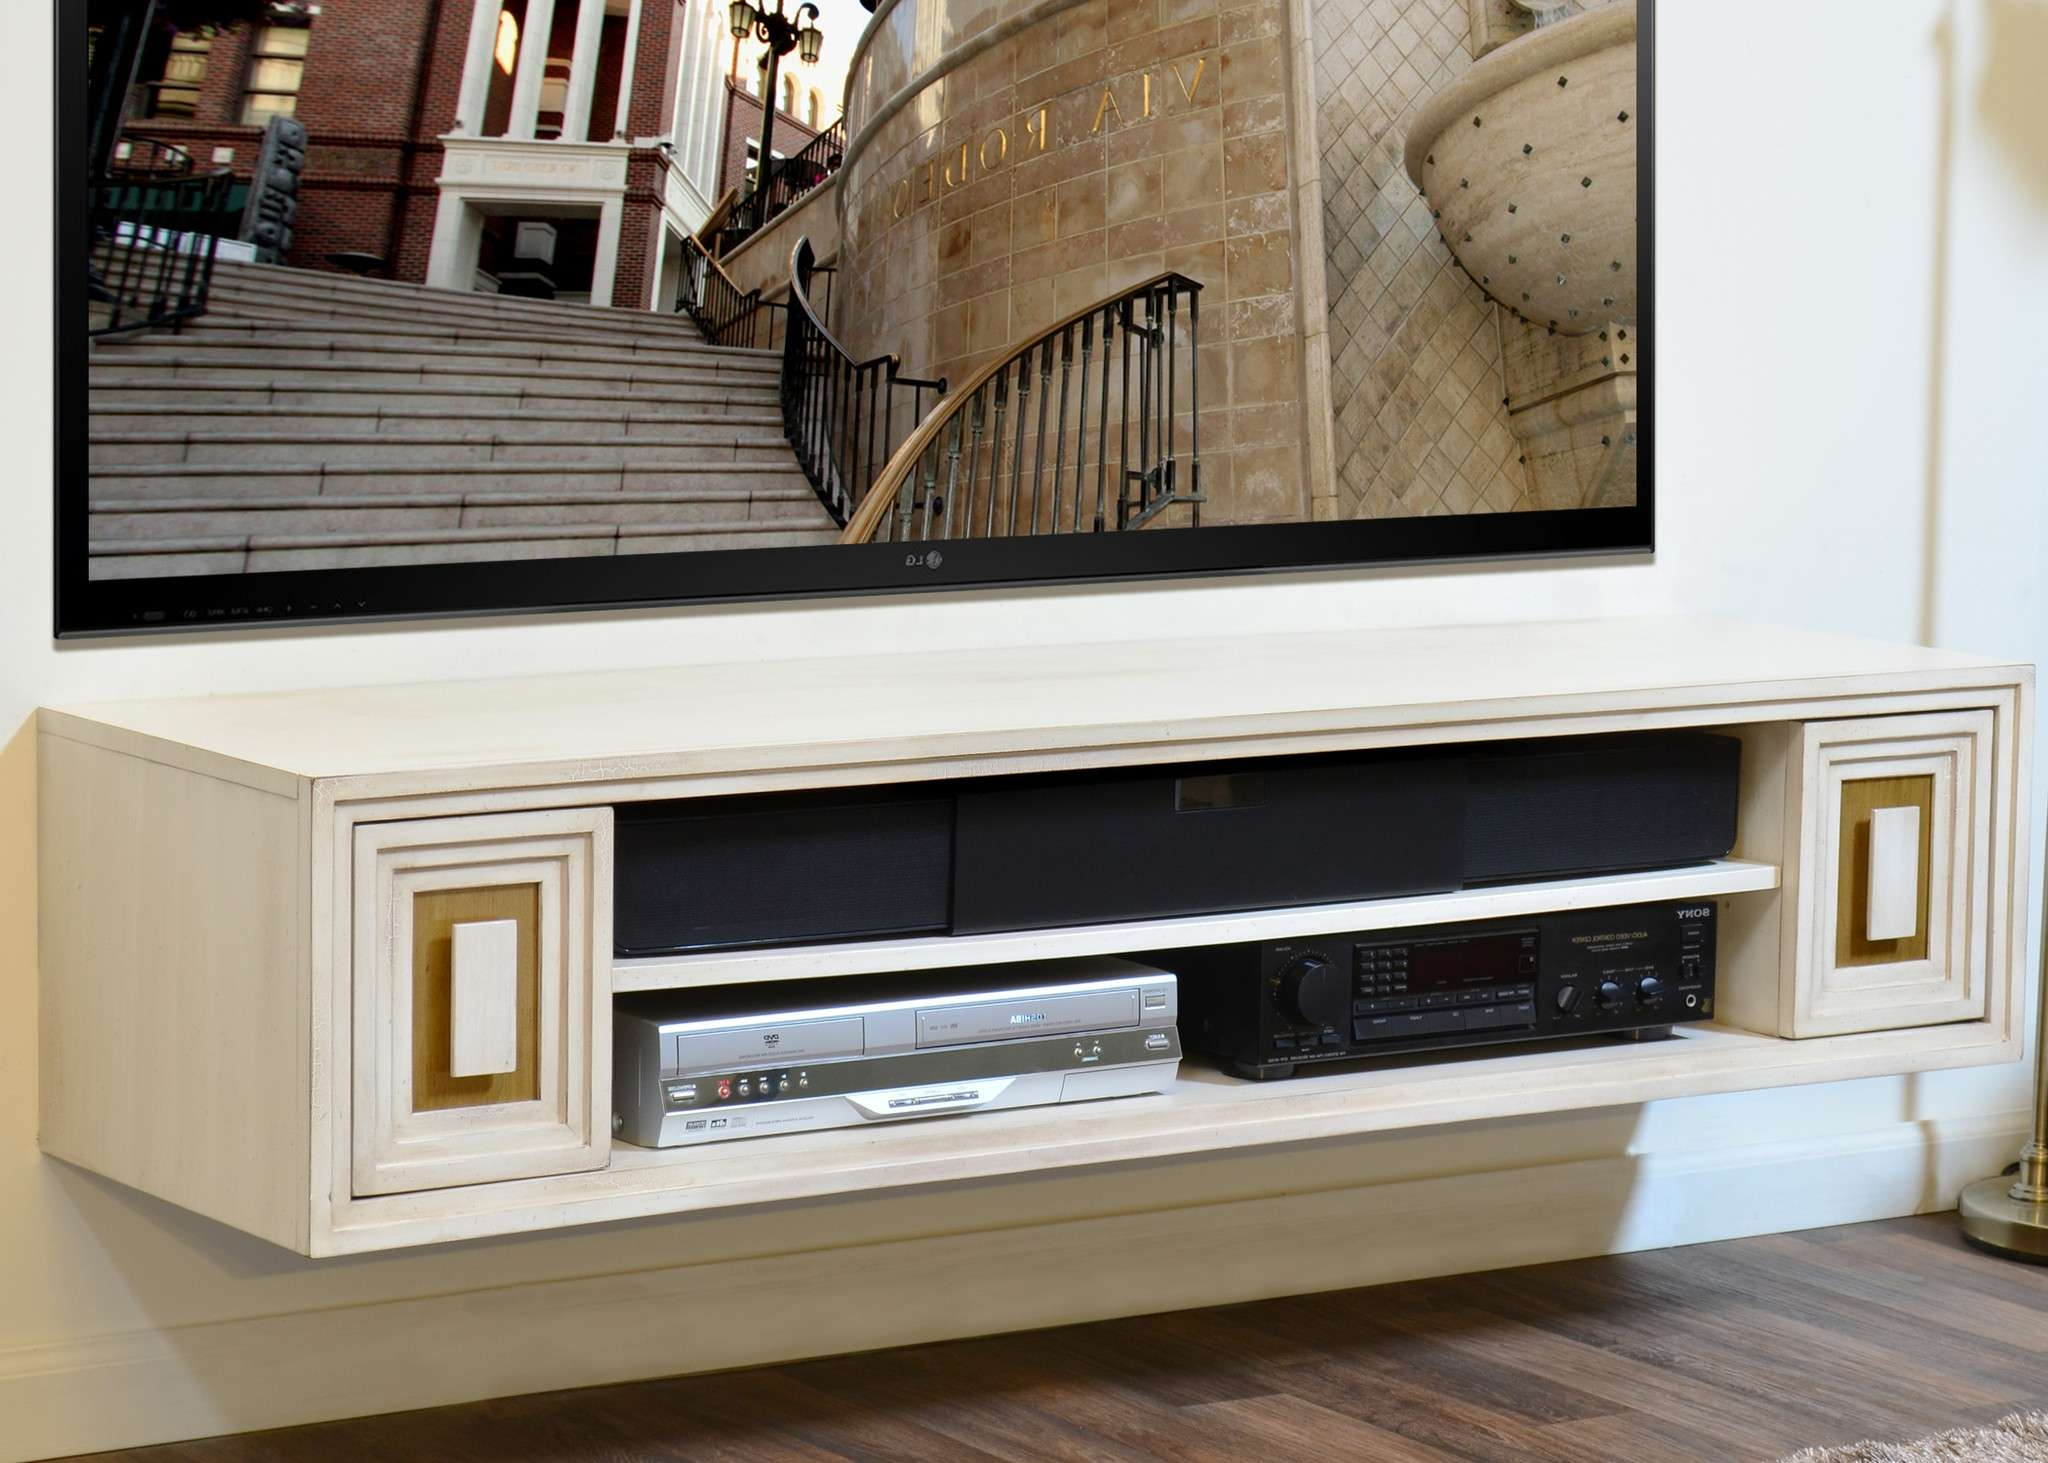 Gold Tv Cabinet – Cabinets Ideas Intended For Gold Tv Cabinets (View 8 of 20)